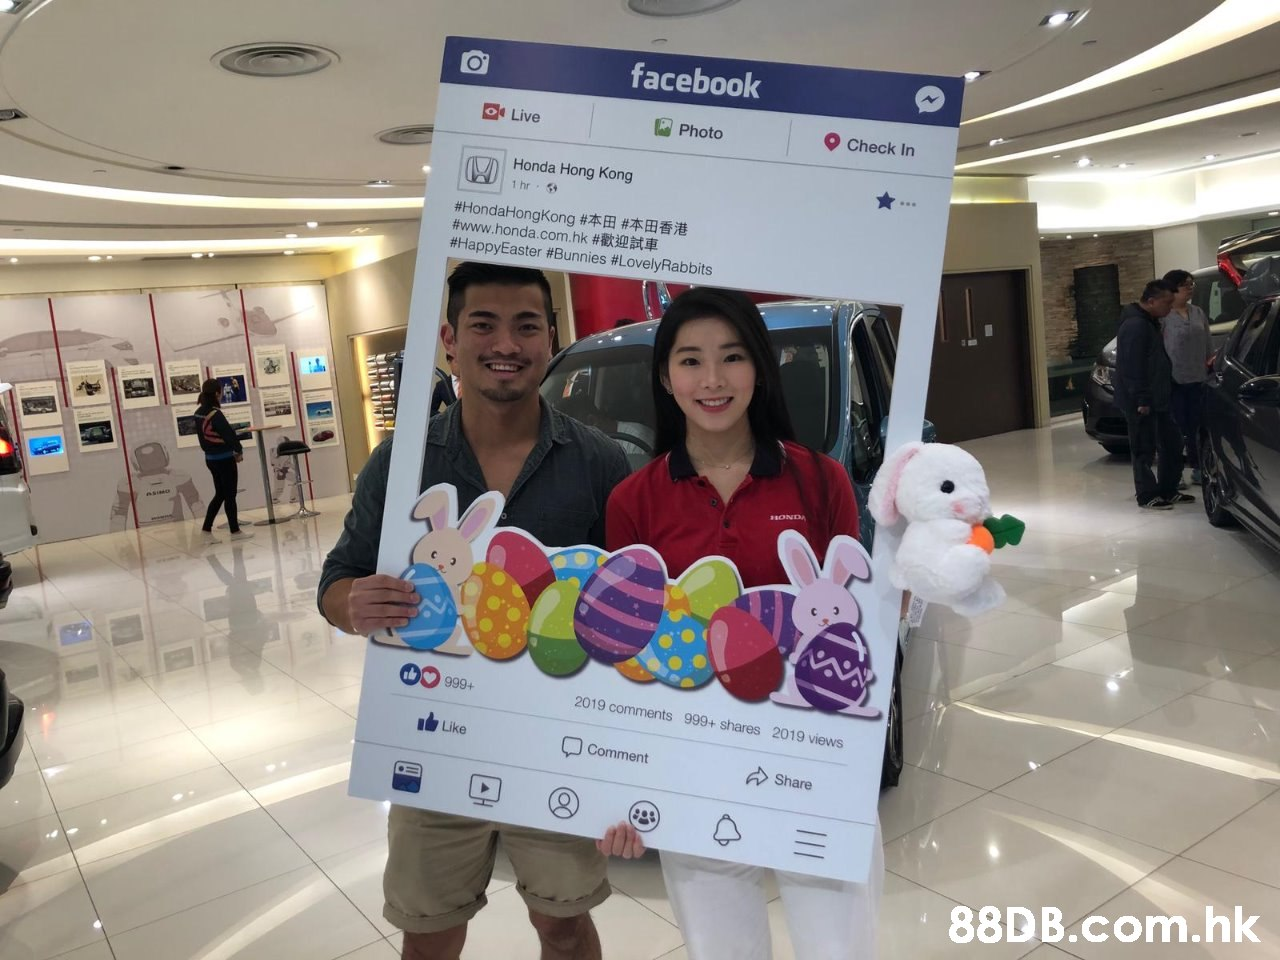 facebook Check In Live Photo Honda Hong Kong 1 hr #HondaHongKong #本田#本田香港 #wwww.honda.com.hk #歡迎試車 #HappyEaster #Bunnies #LovelyRabbits 099 2019 comments 999+ shares 2019 views Like Comment Share .hk  Event,Smile,Electronic device,